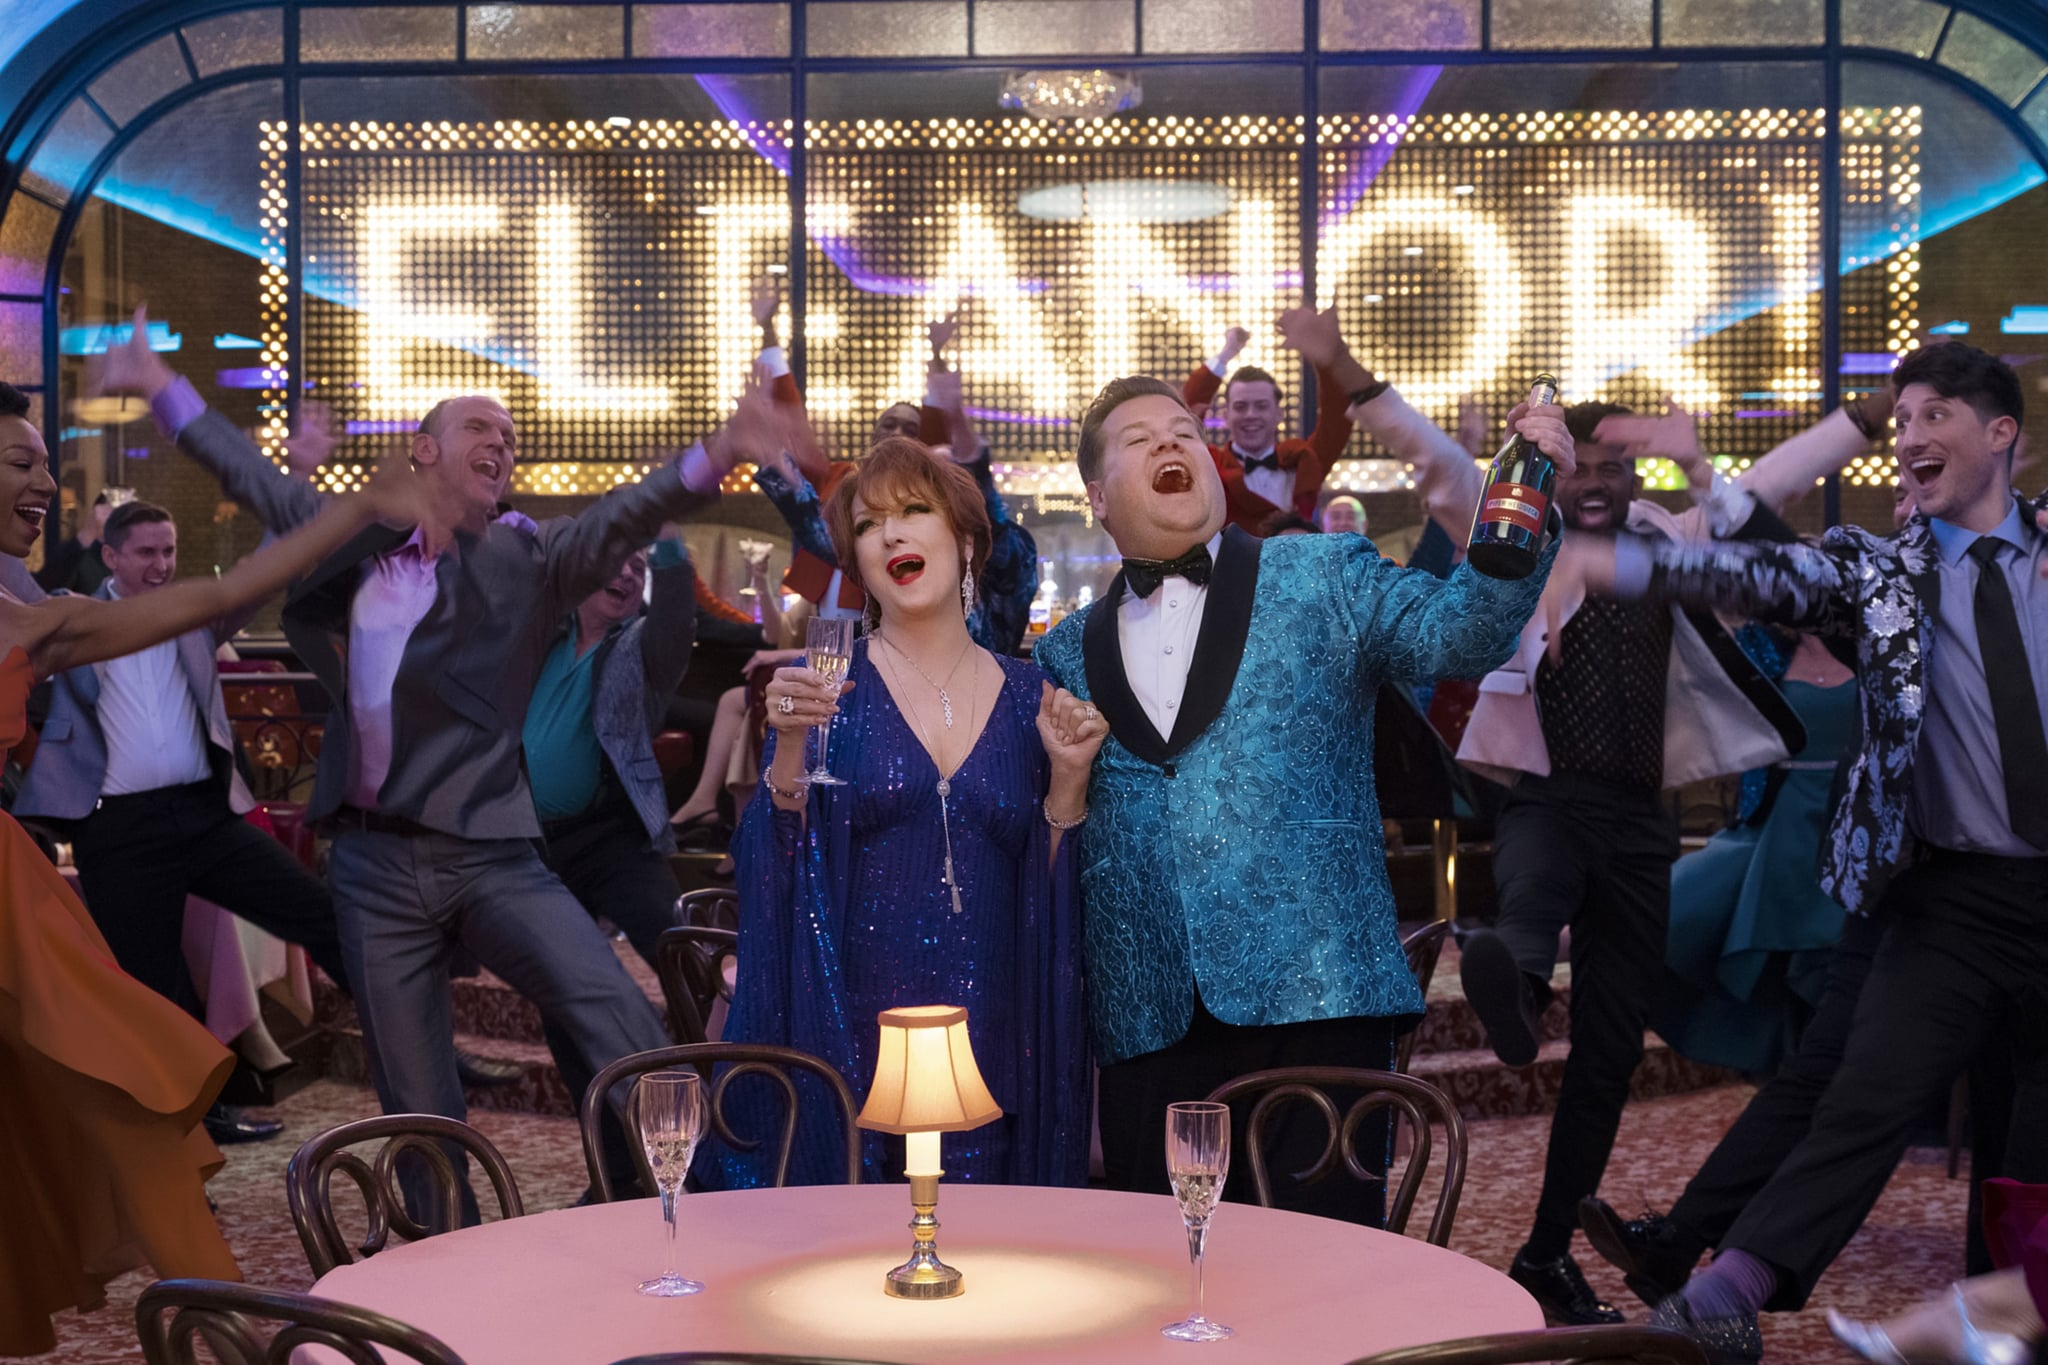 THE PROM, from left: Meryl Streep, James Corden, 2020. ph: Melinda Sue Gordon /  Netflix / Courtesy Everett Collection